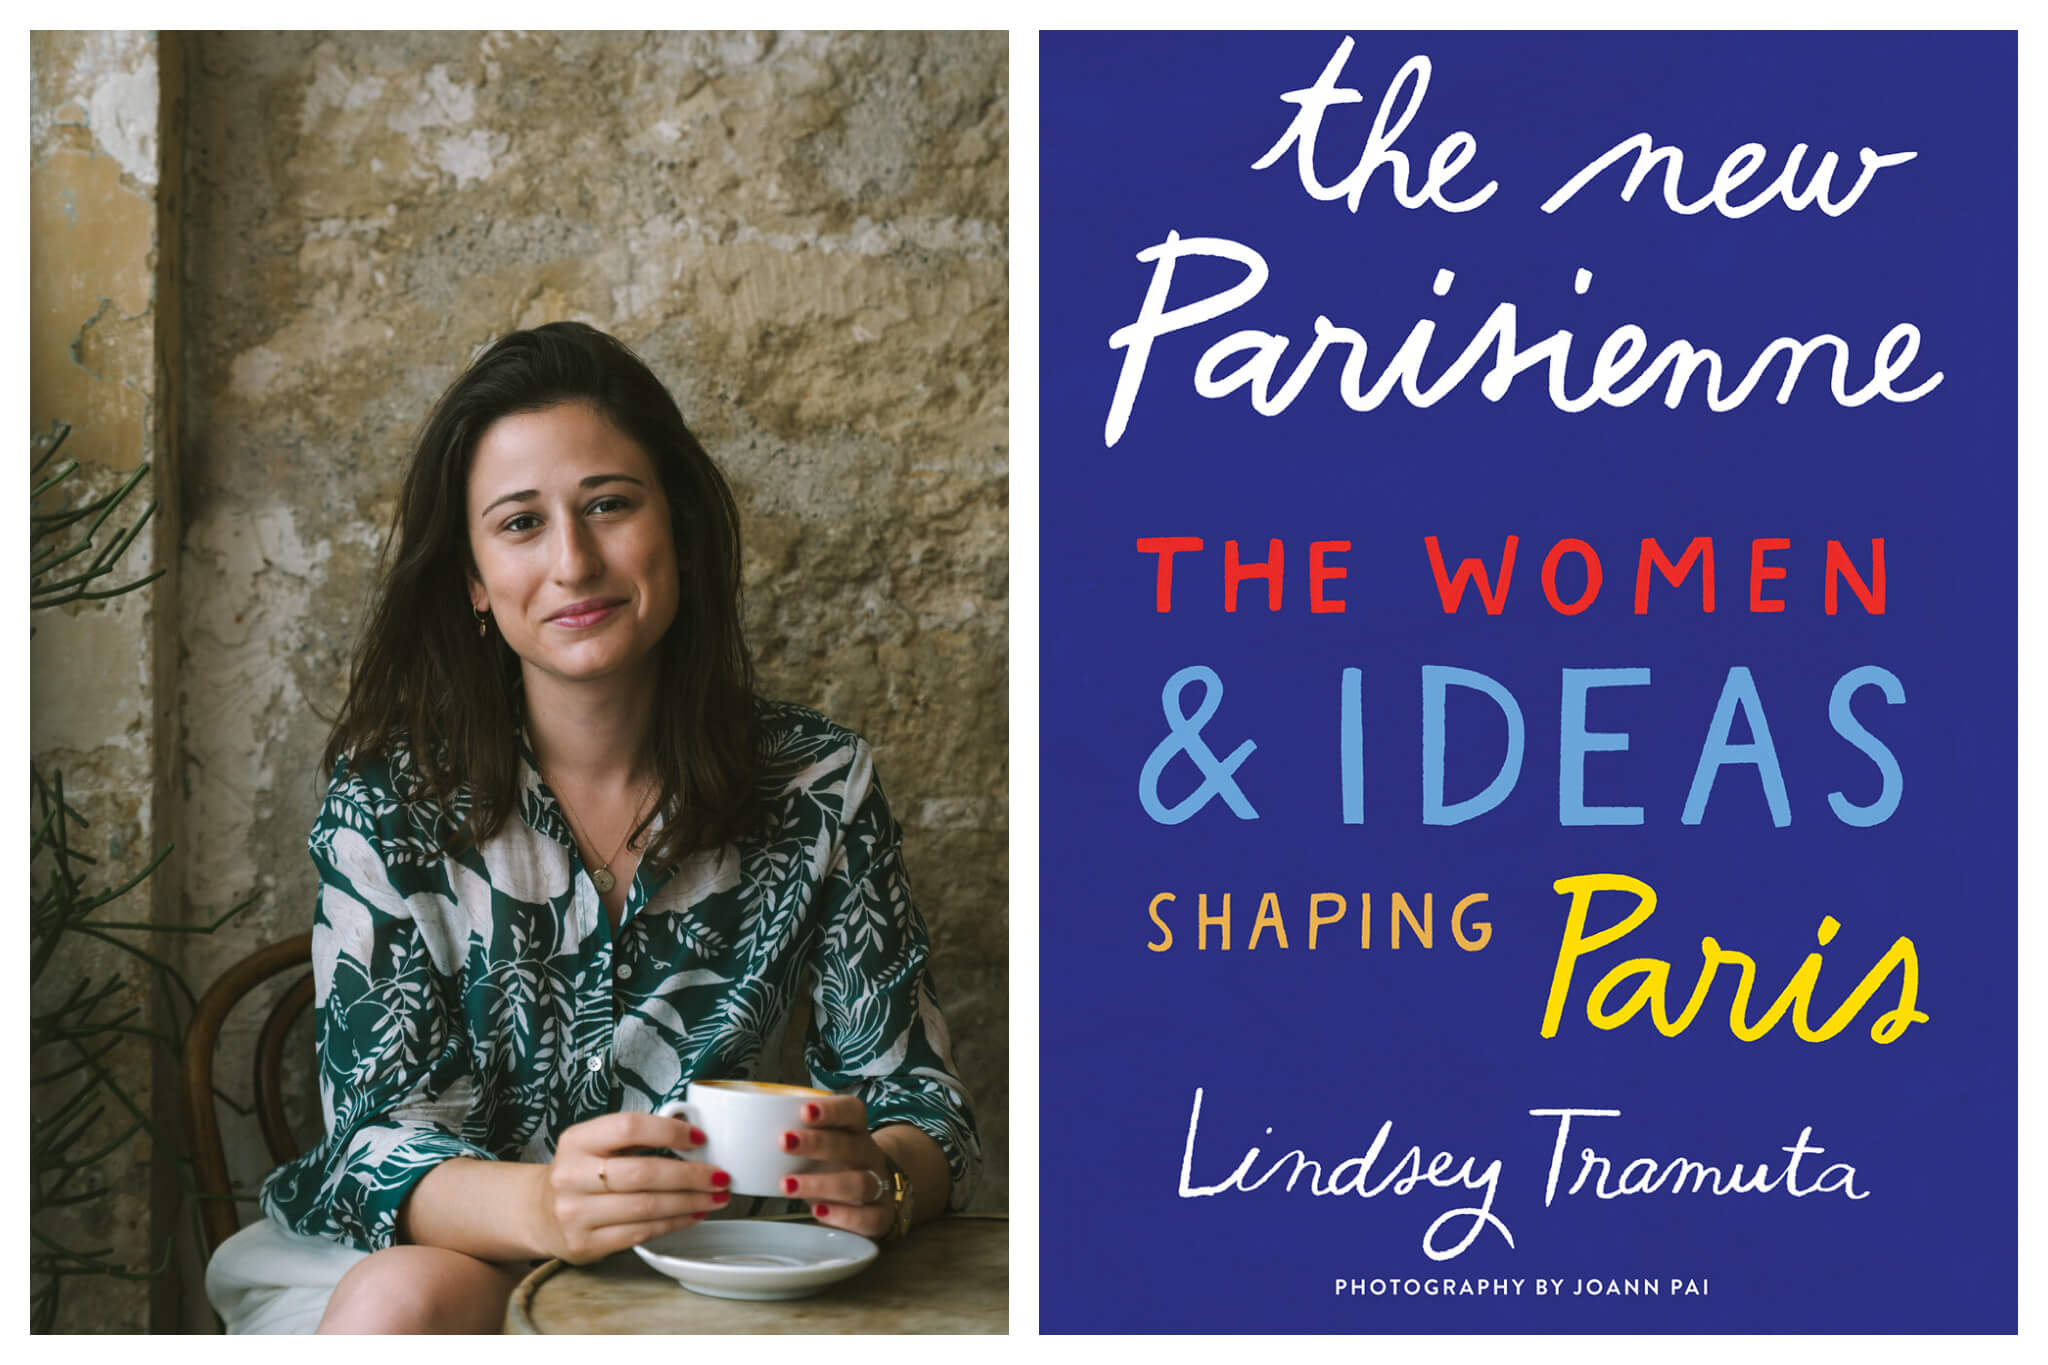 Left: Lindsey Tramuta, author of The New Parisienne: The Women & Ideas Shaping Paris, sits with a cup of coffee while smiling at the camera.  Right: Cover of Lindsey Tramuta's new book, The New Parisienne: The Women & Ideas Shaping Paris